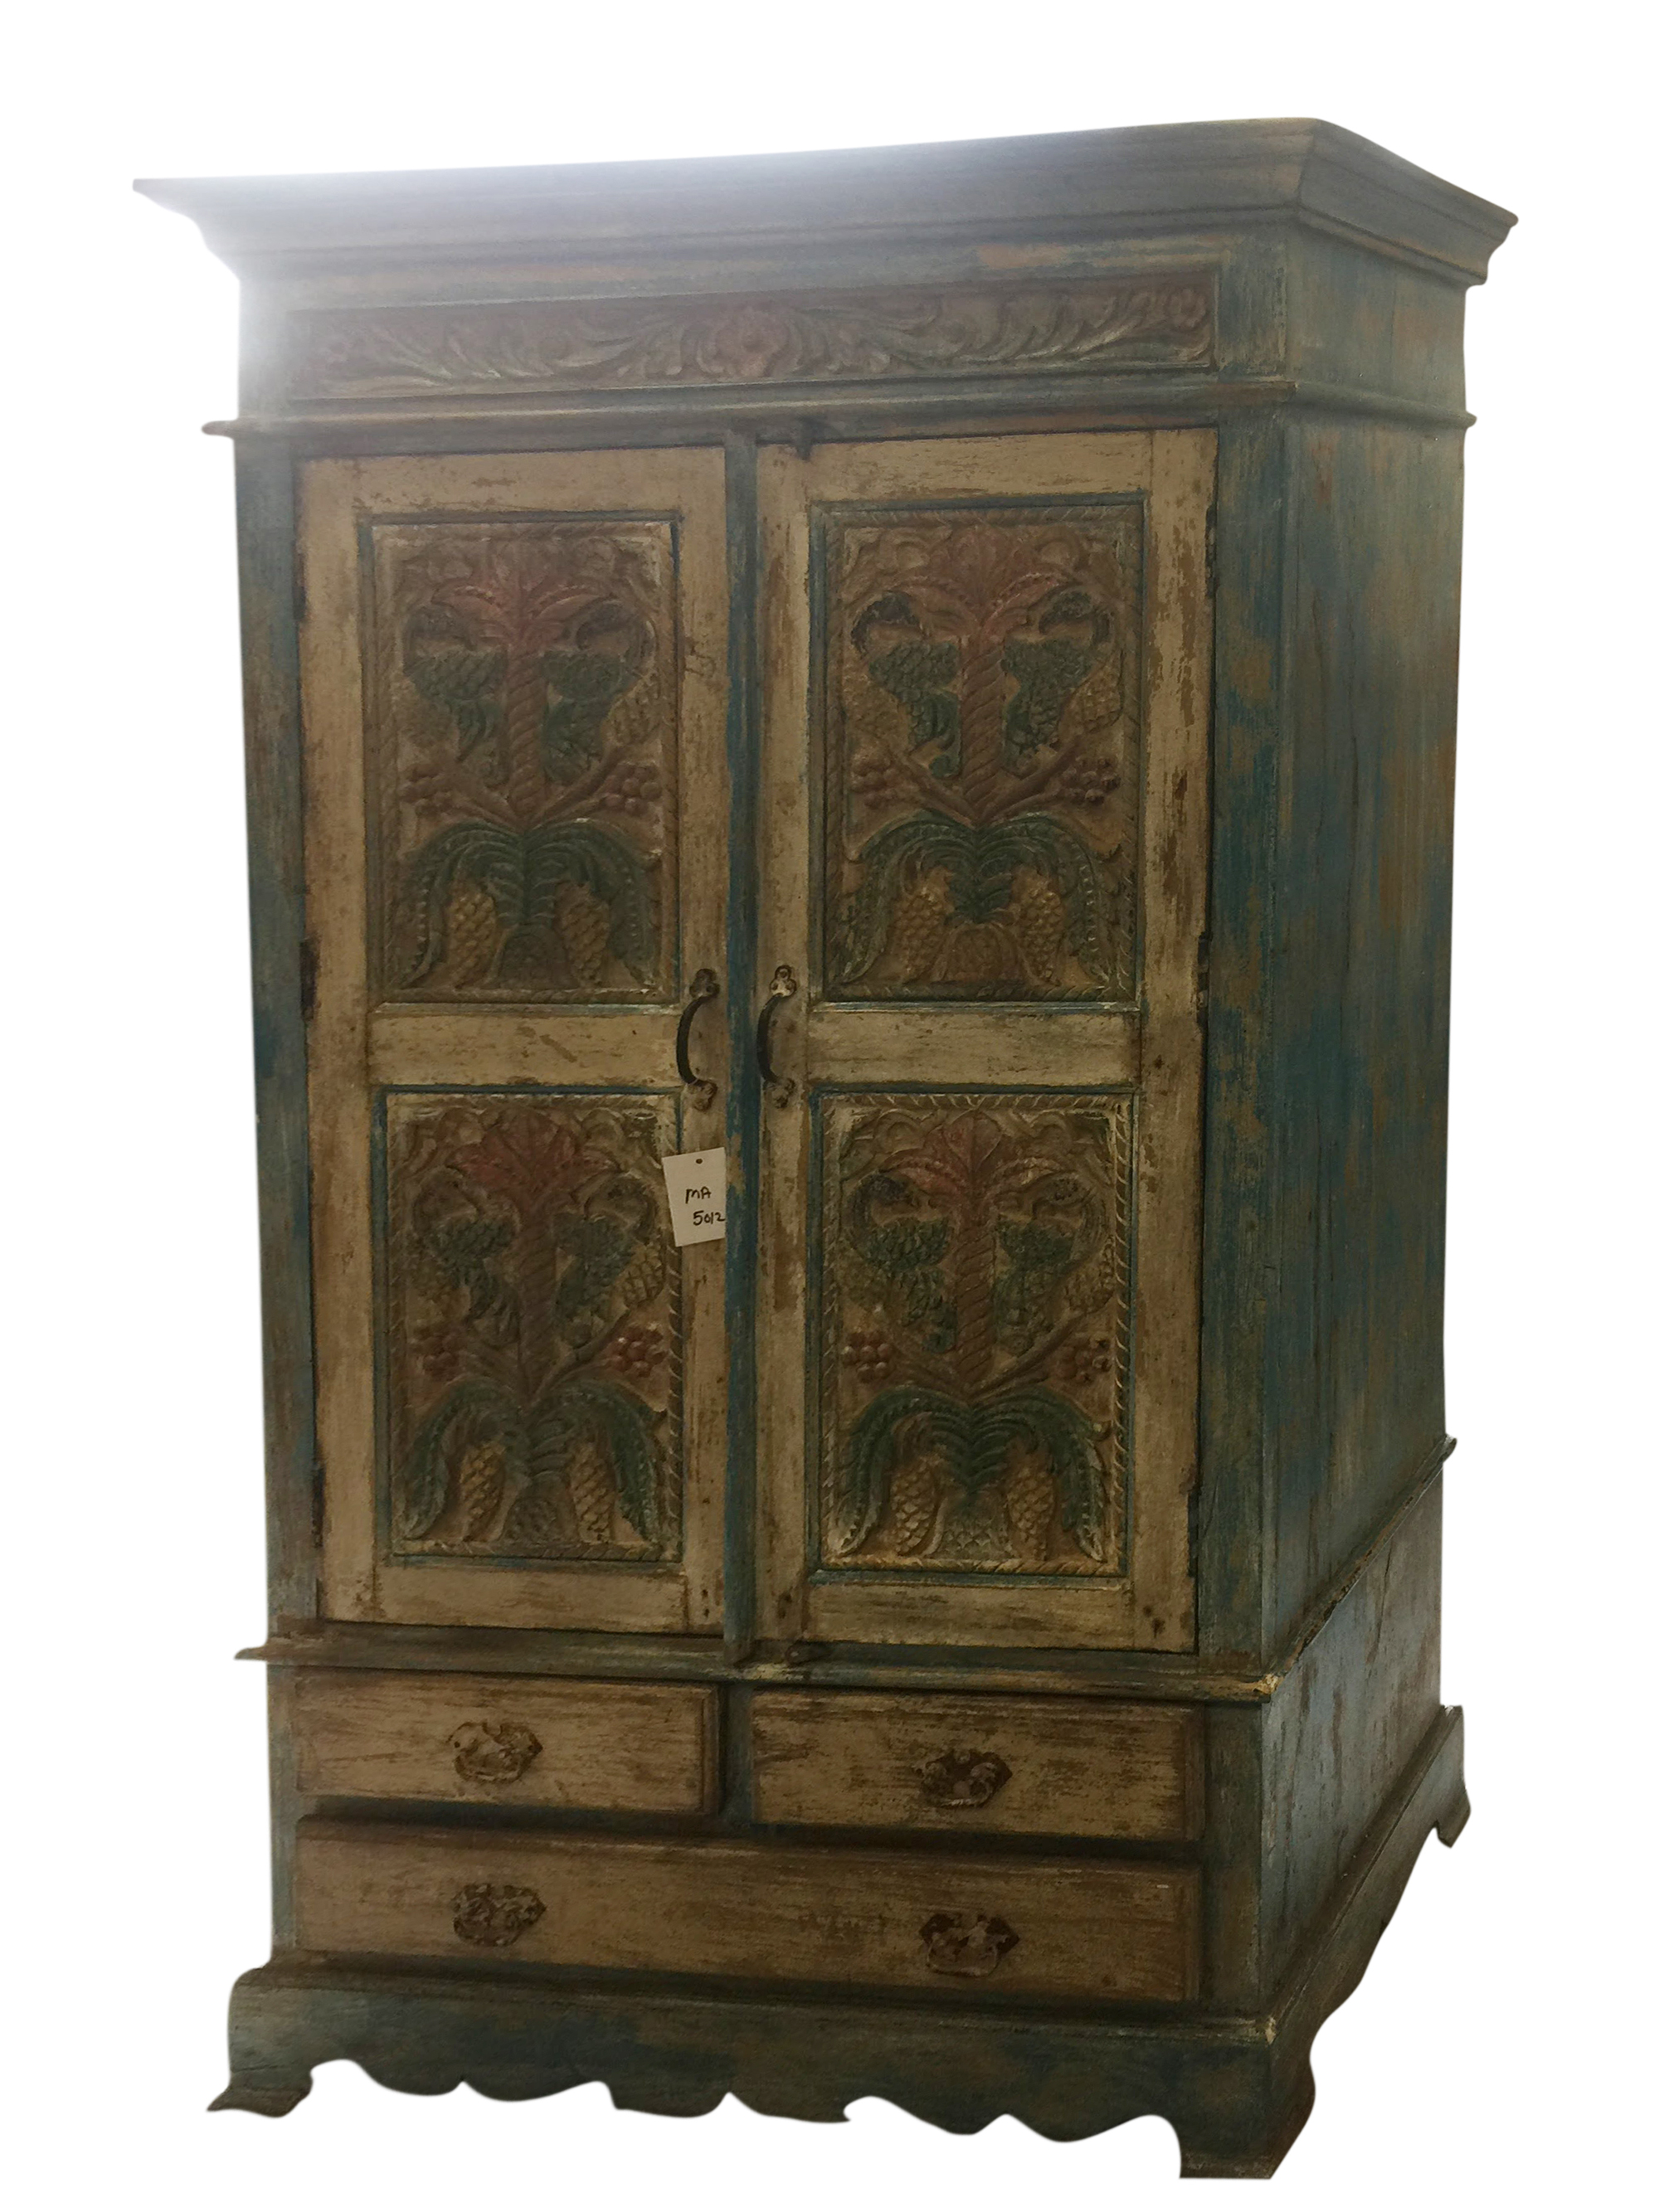 Mogul Antique Indian Handcarved Cabinet Chest Rustic Furniture Armoire with Drawers Rustic Interior Decor NEW Shipment